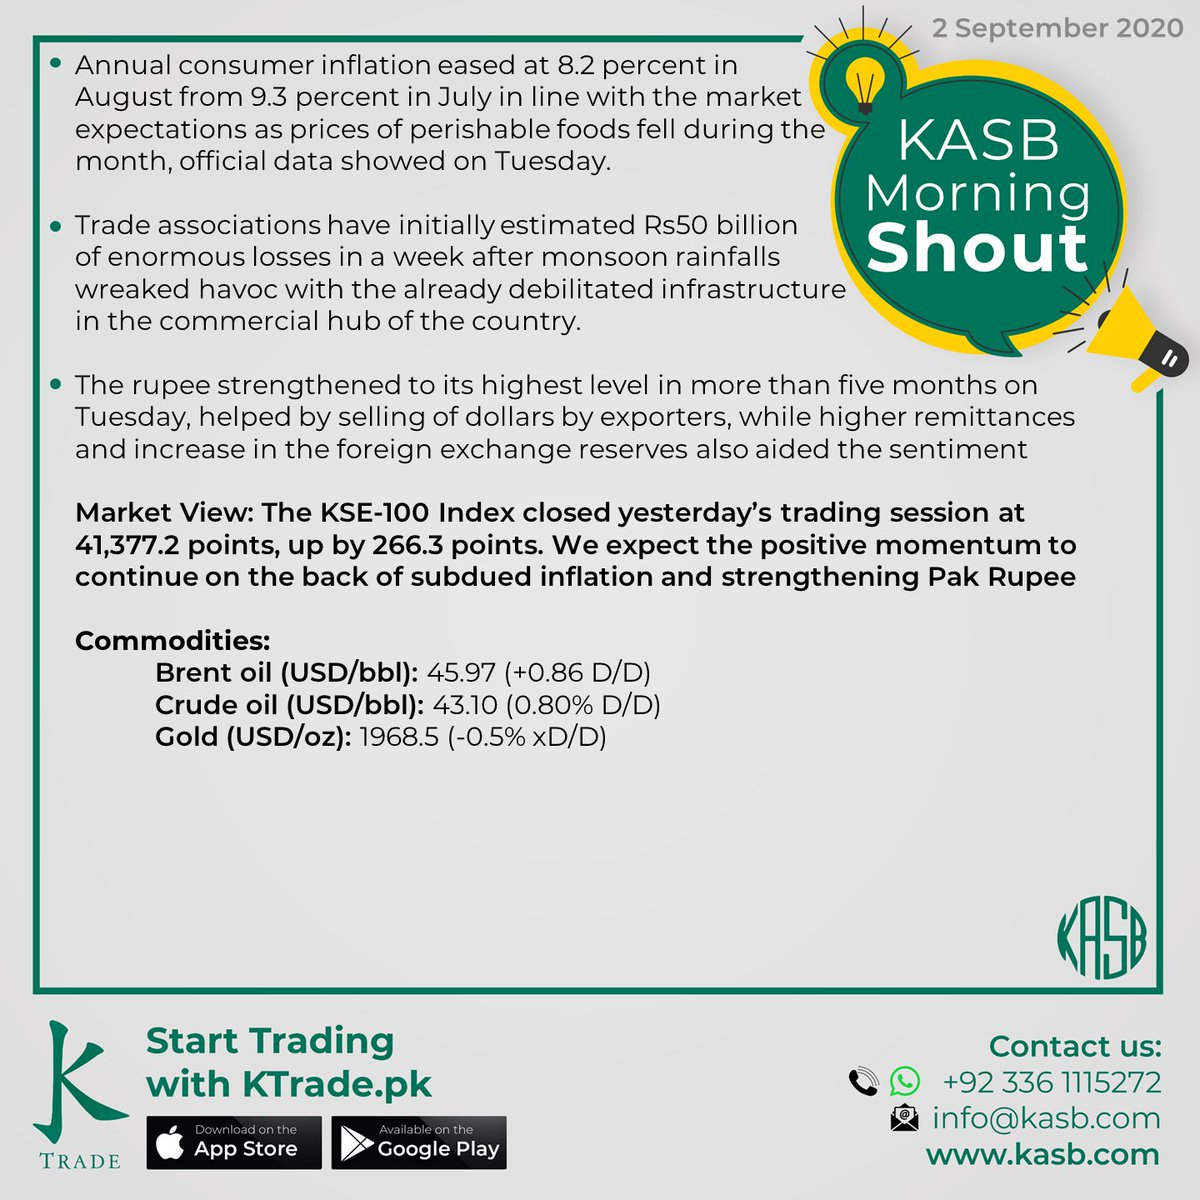 KASB Morning Shout: Our views on today's news #kasb #smartinvesting #psx #stockmarket #KTrade #onlinetrading #pakistaneconomy #imrankhan #sbp #inflation #kse100 #brokeragehouse #psxstocks #marketupdate #emergingmarkets #frontiermarkets #news #morning #today #views https://t.co/palbhbtItL